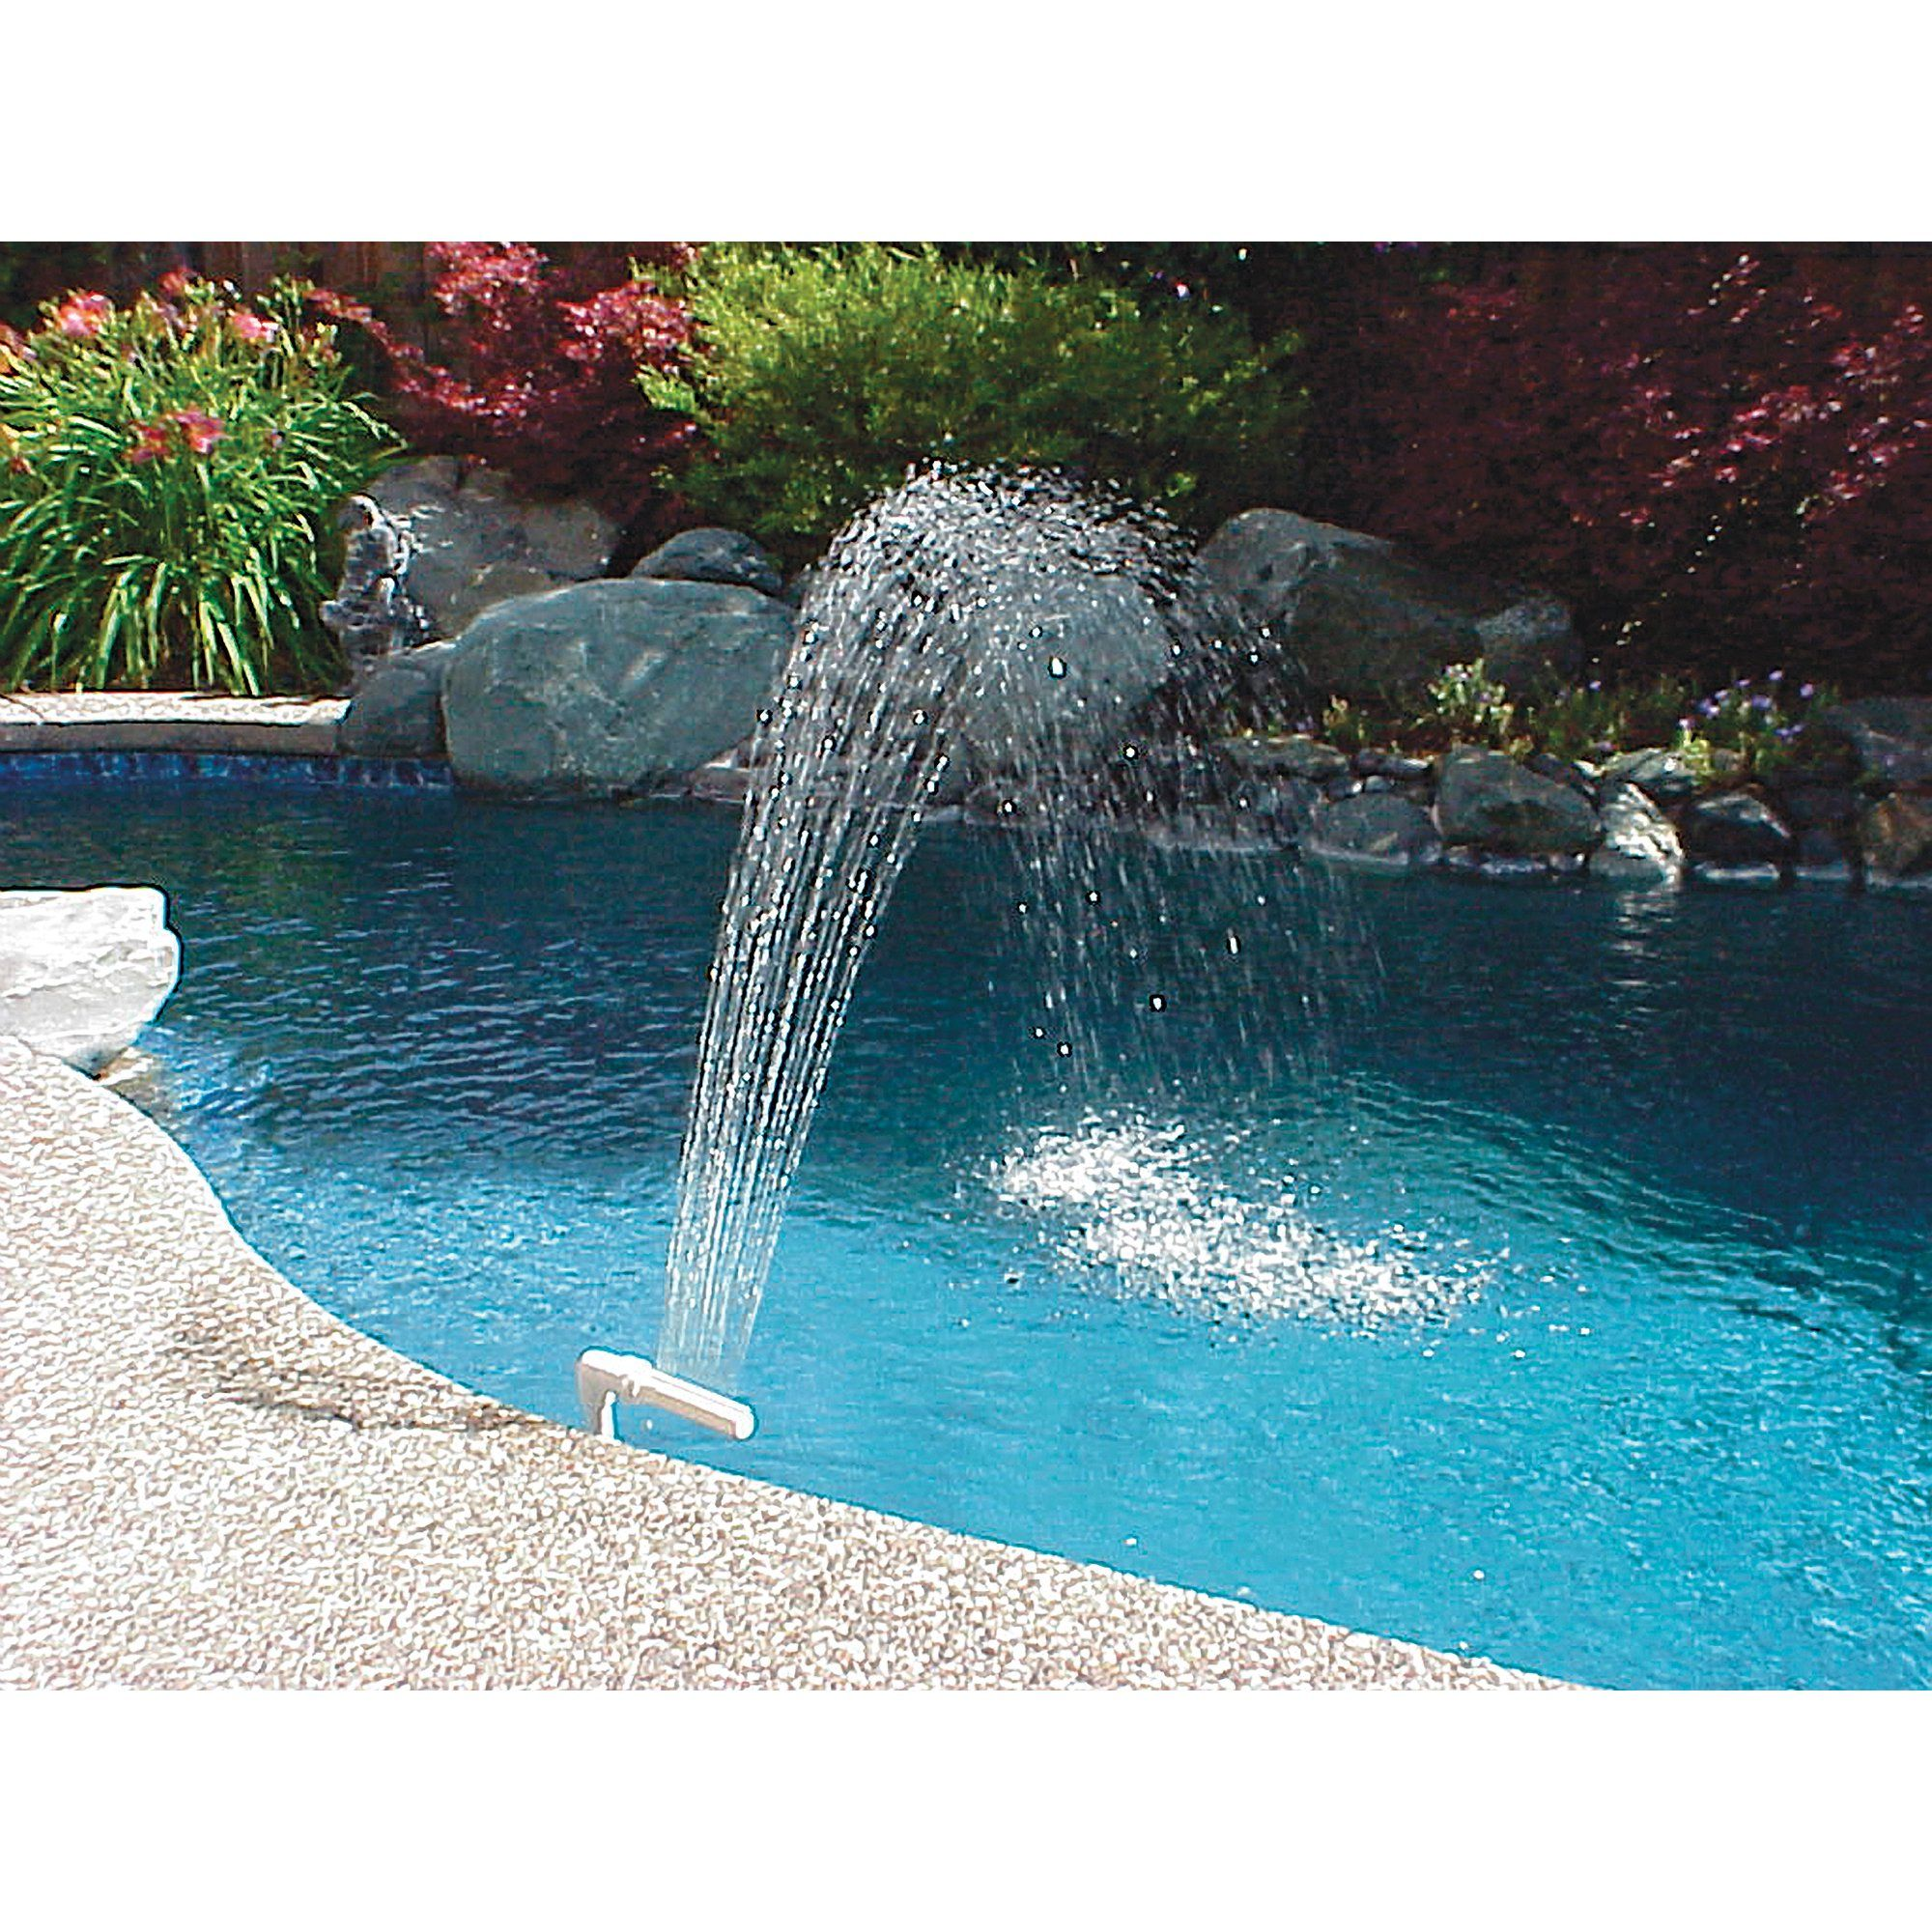 Poolmaster Pool And Spa Waterfall Fountain For In Ground And Above Ground Swimming Pools Walmart Com In 2021 Waterfall Fountain Pool Waterfall Pool Fountain